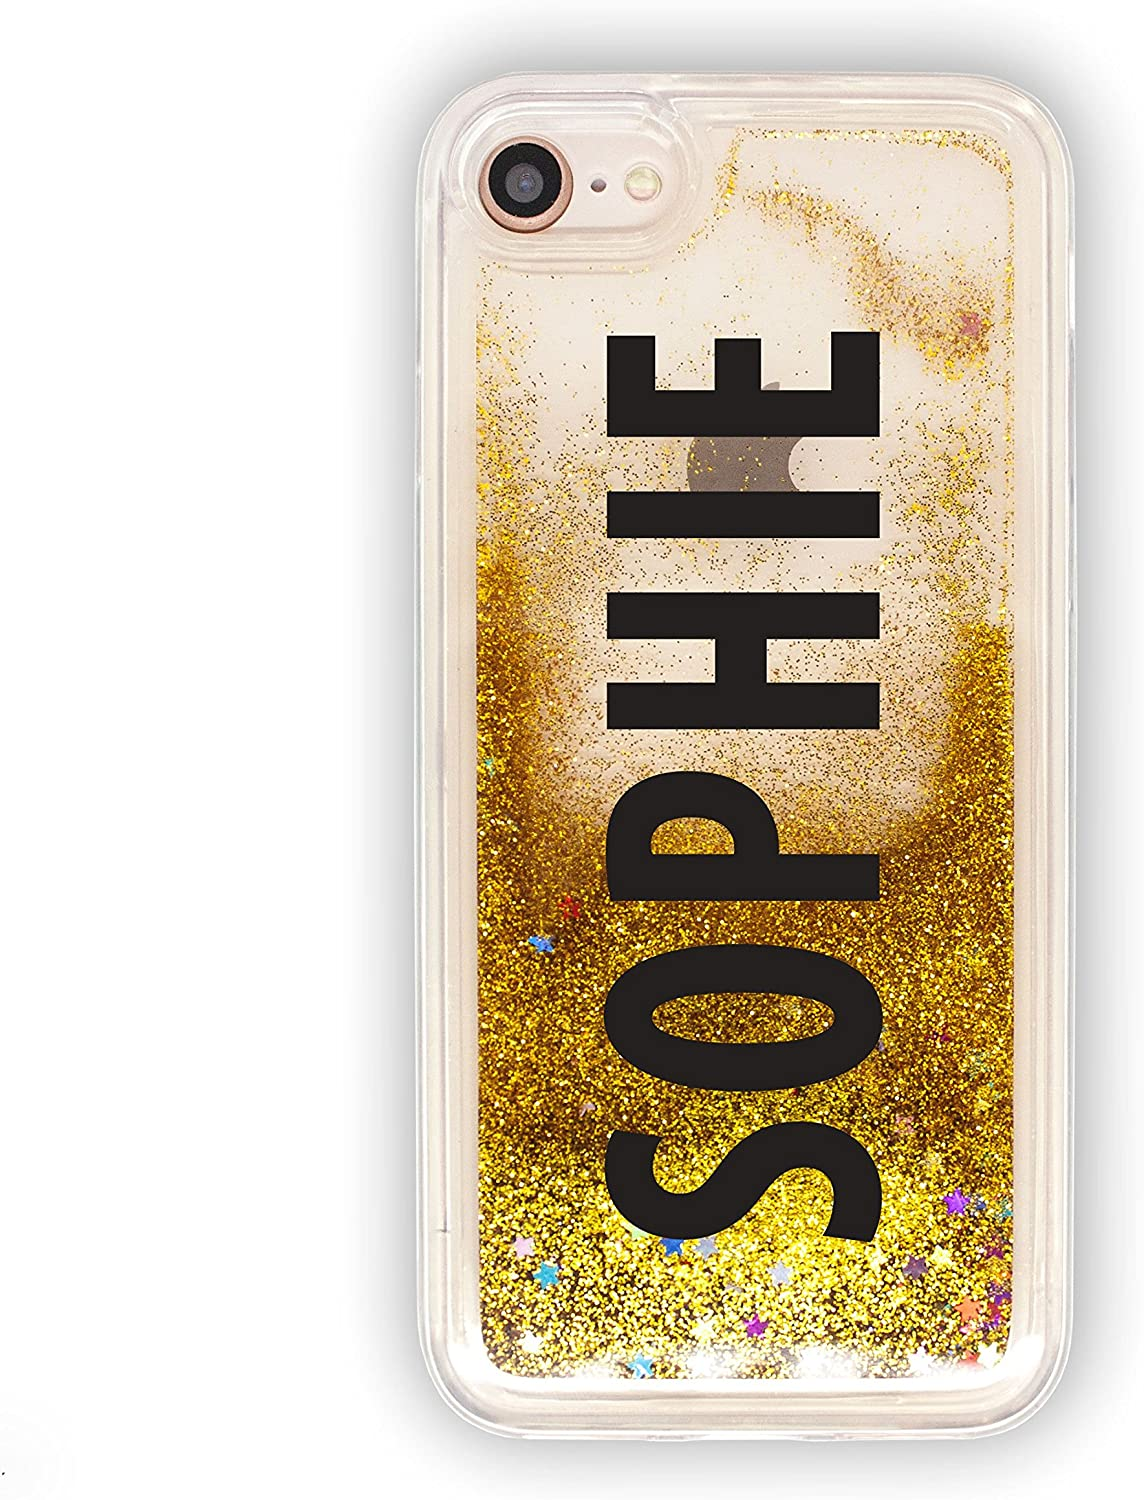 Amazon.com: SmartGiftShop Personalised Custom Liquid Glitter Clear Phone  Cover/Case VERT Text for iPhone iPhone 6 / 6s / Gold Glitter Black Ink:  Electronics